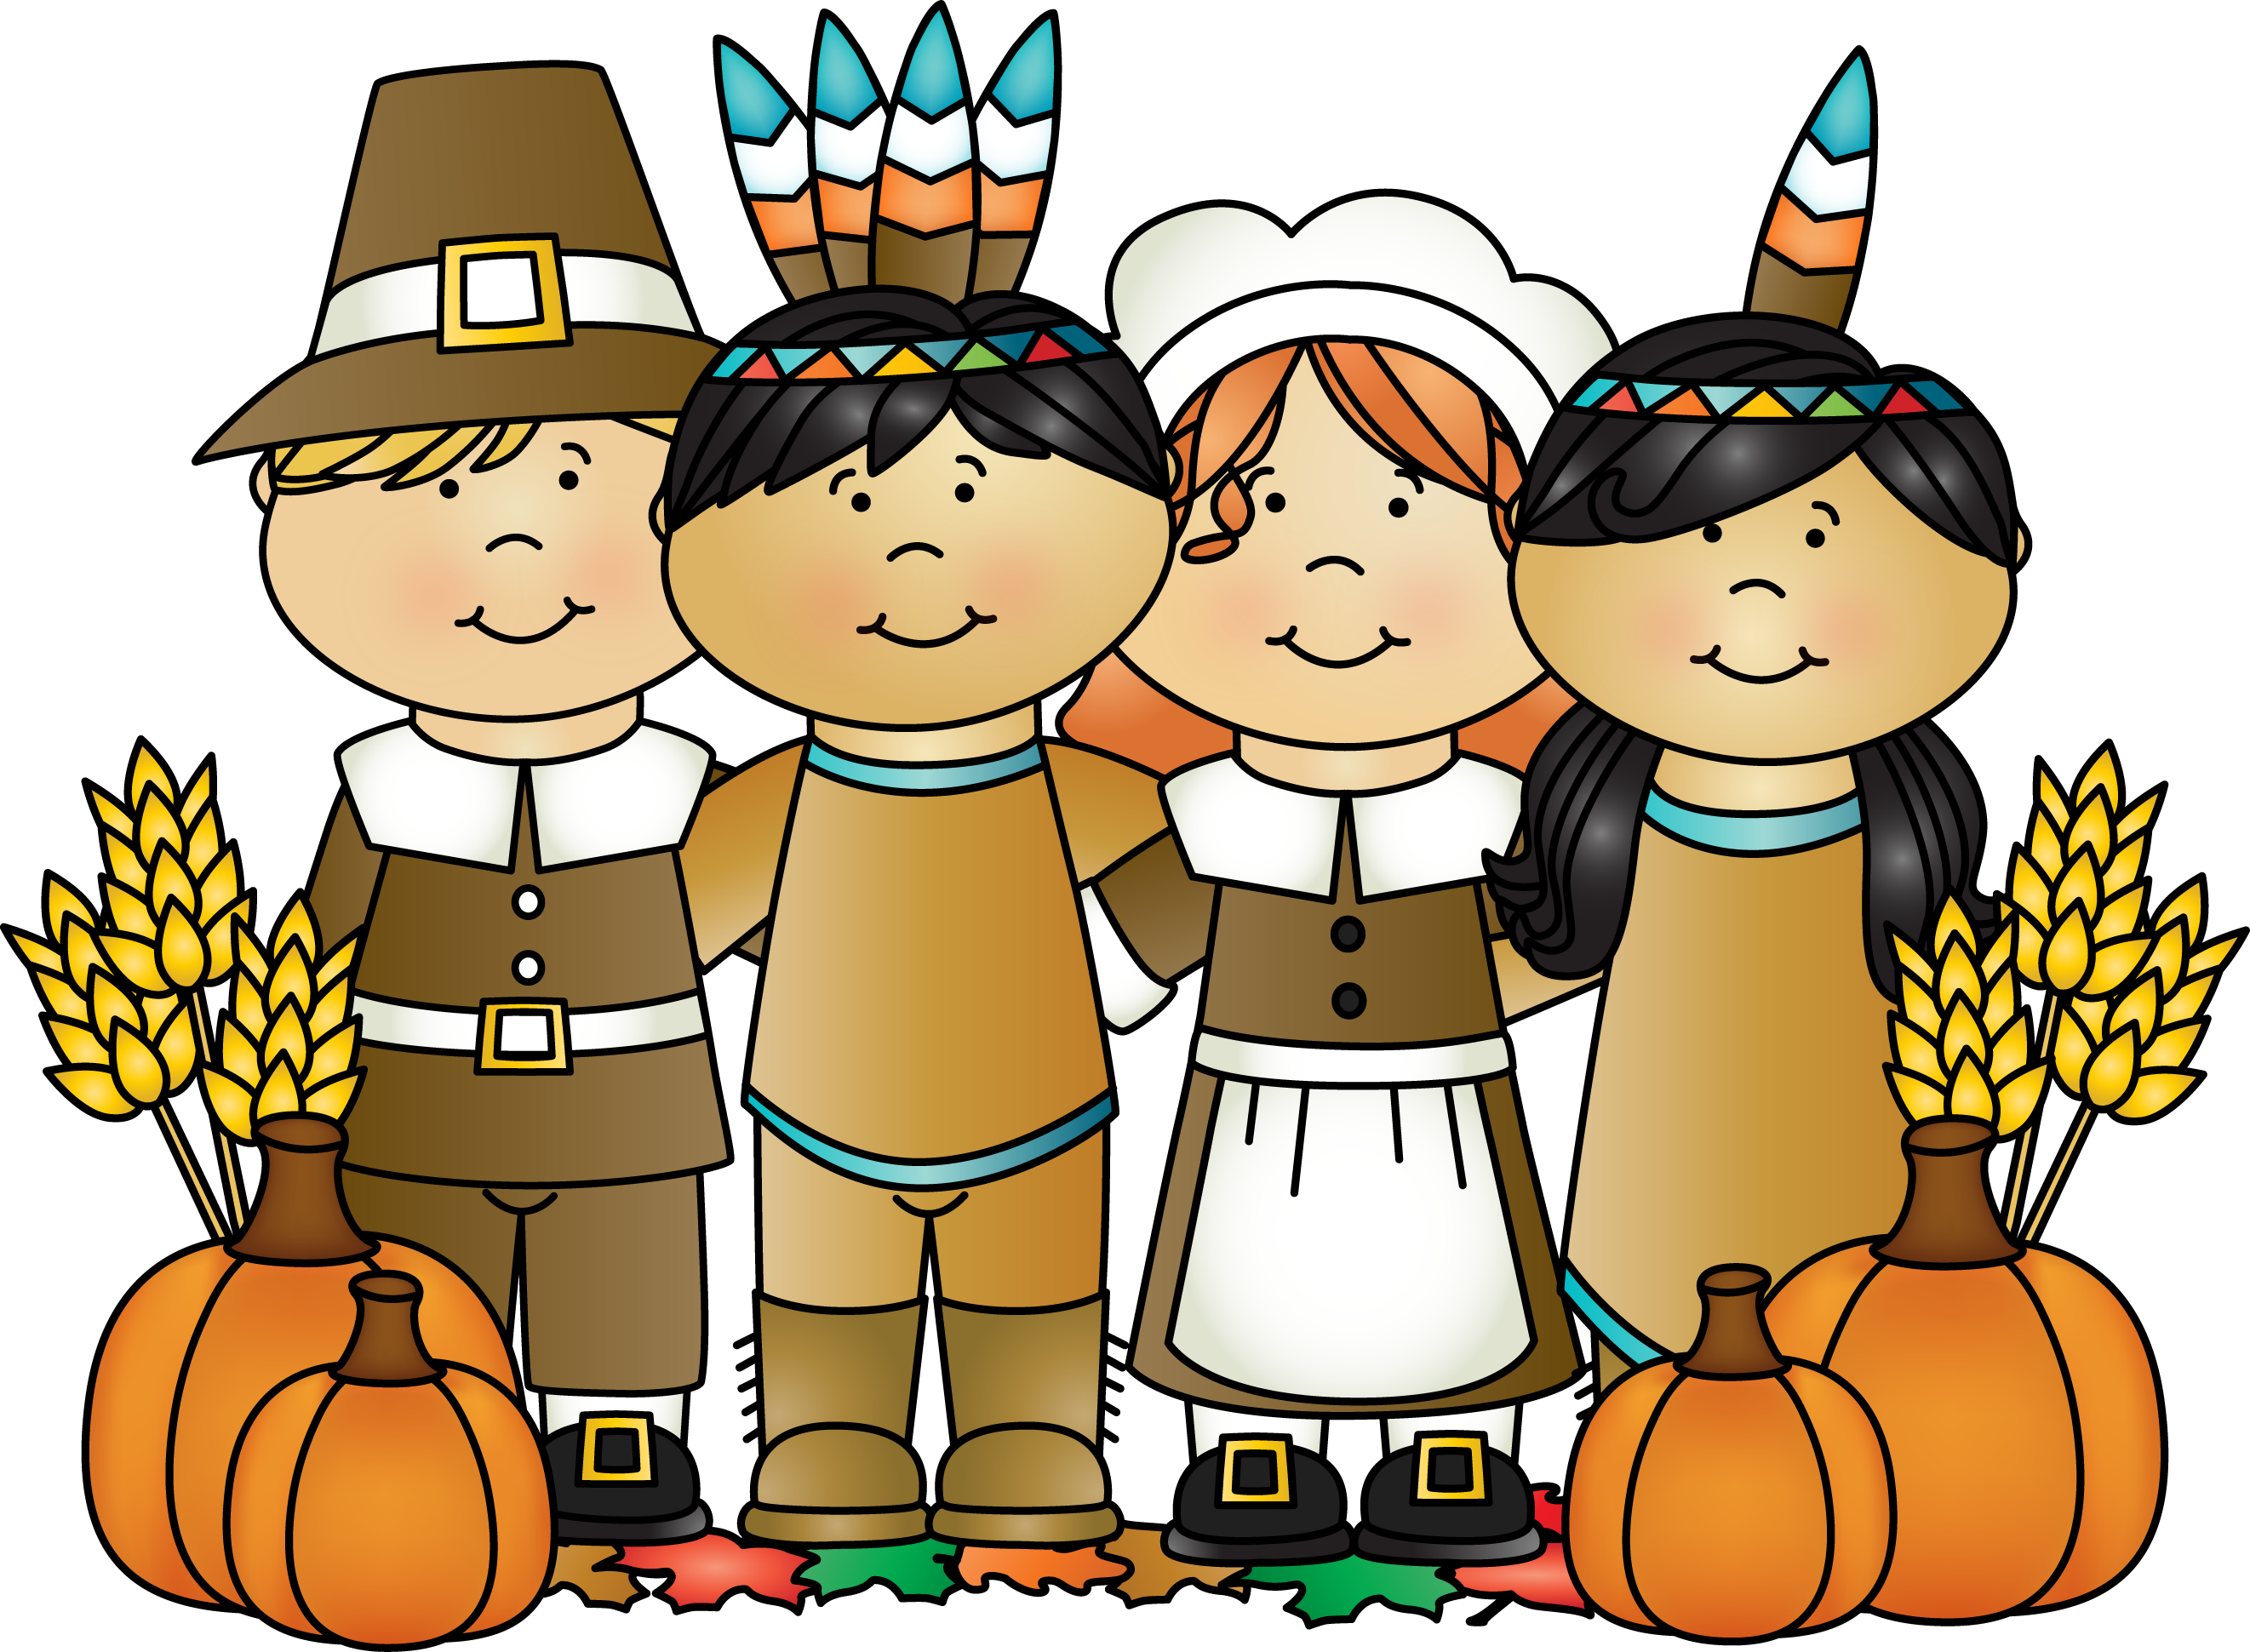 Clip Art Thanksgiving Feast Clipart first thanksgiving feast clipart kid one of the indians who was called squanto came to help pilgrims